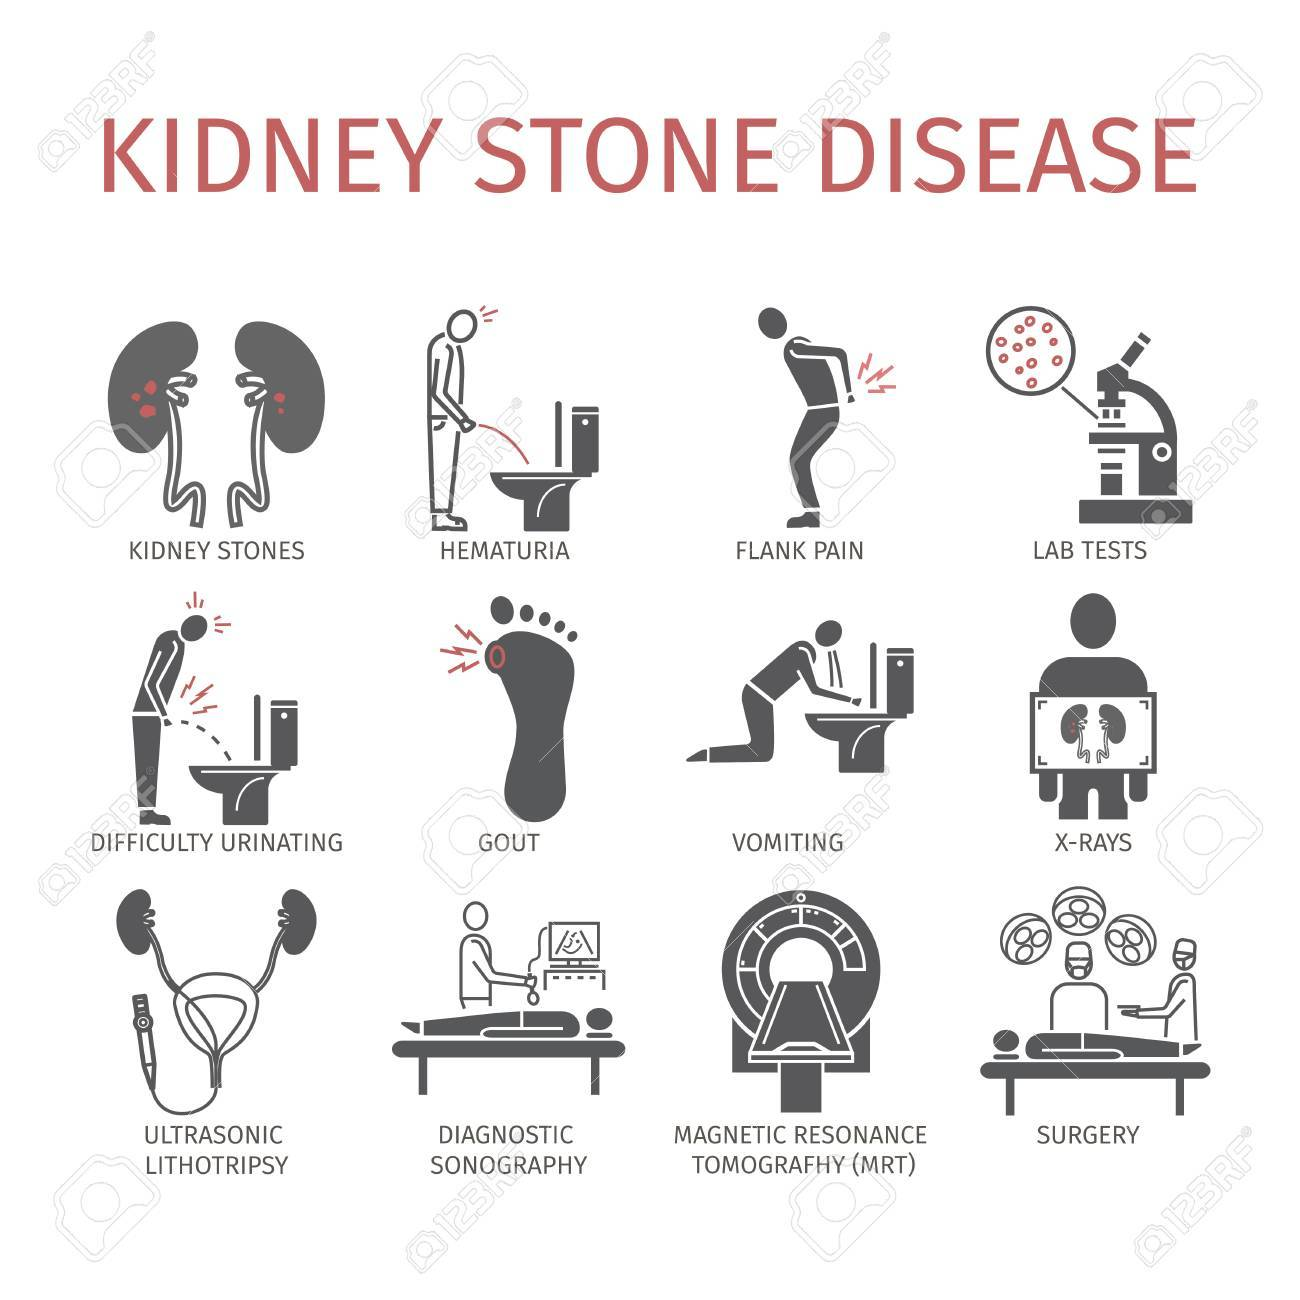 Kidney stone pain location diagram application wiring diagram kidney stone pain location diagram images gallery ccuart